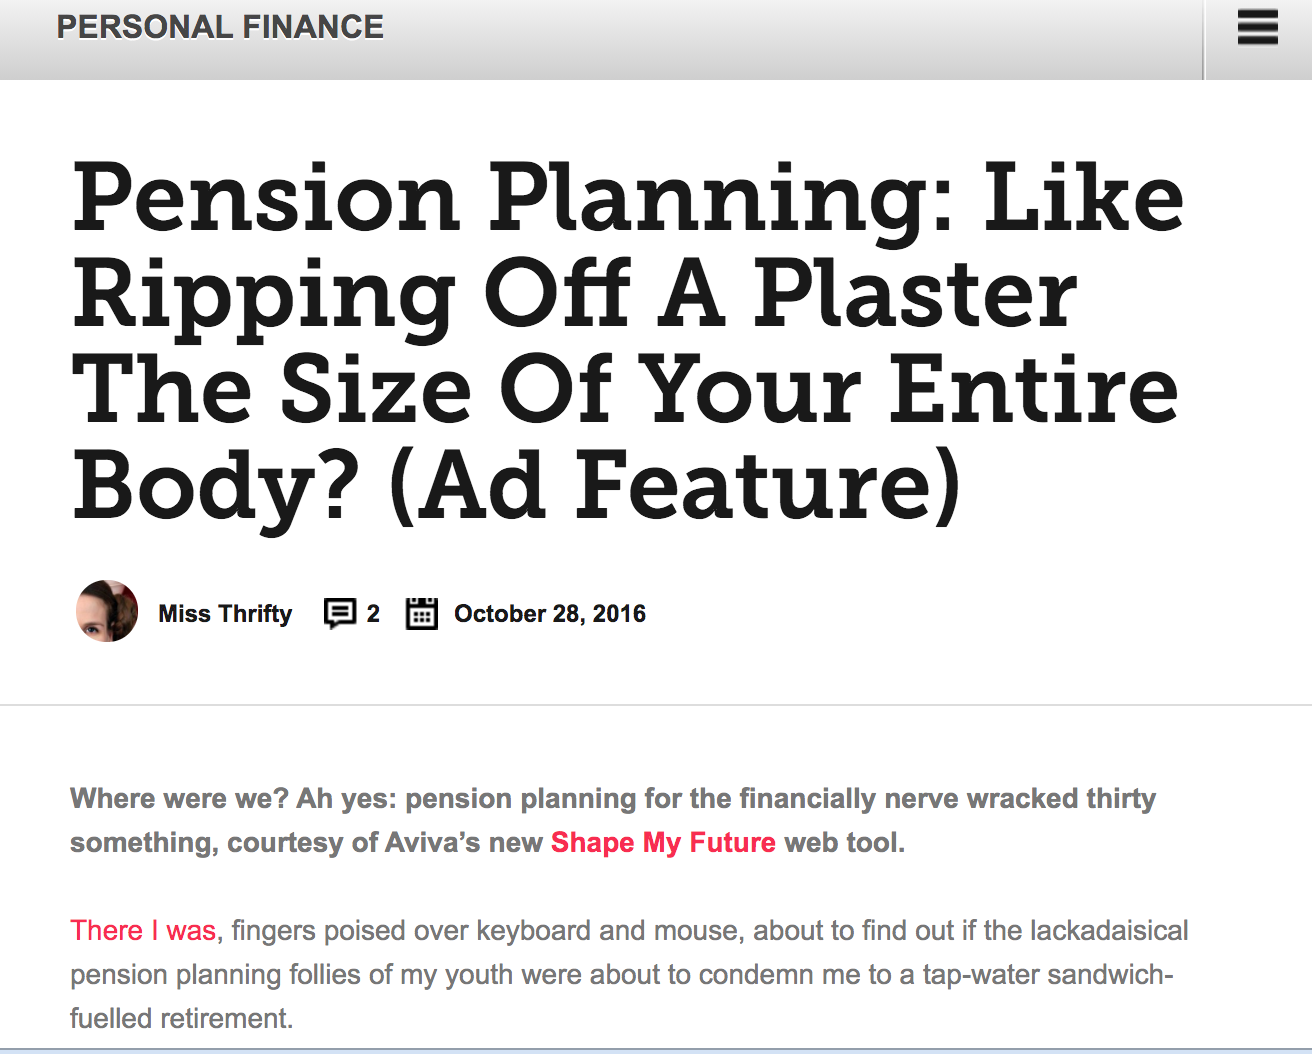 pension planning: like ripping off a plaster the size of your entire body?